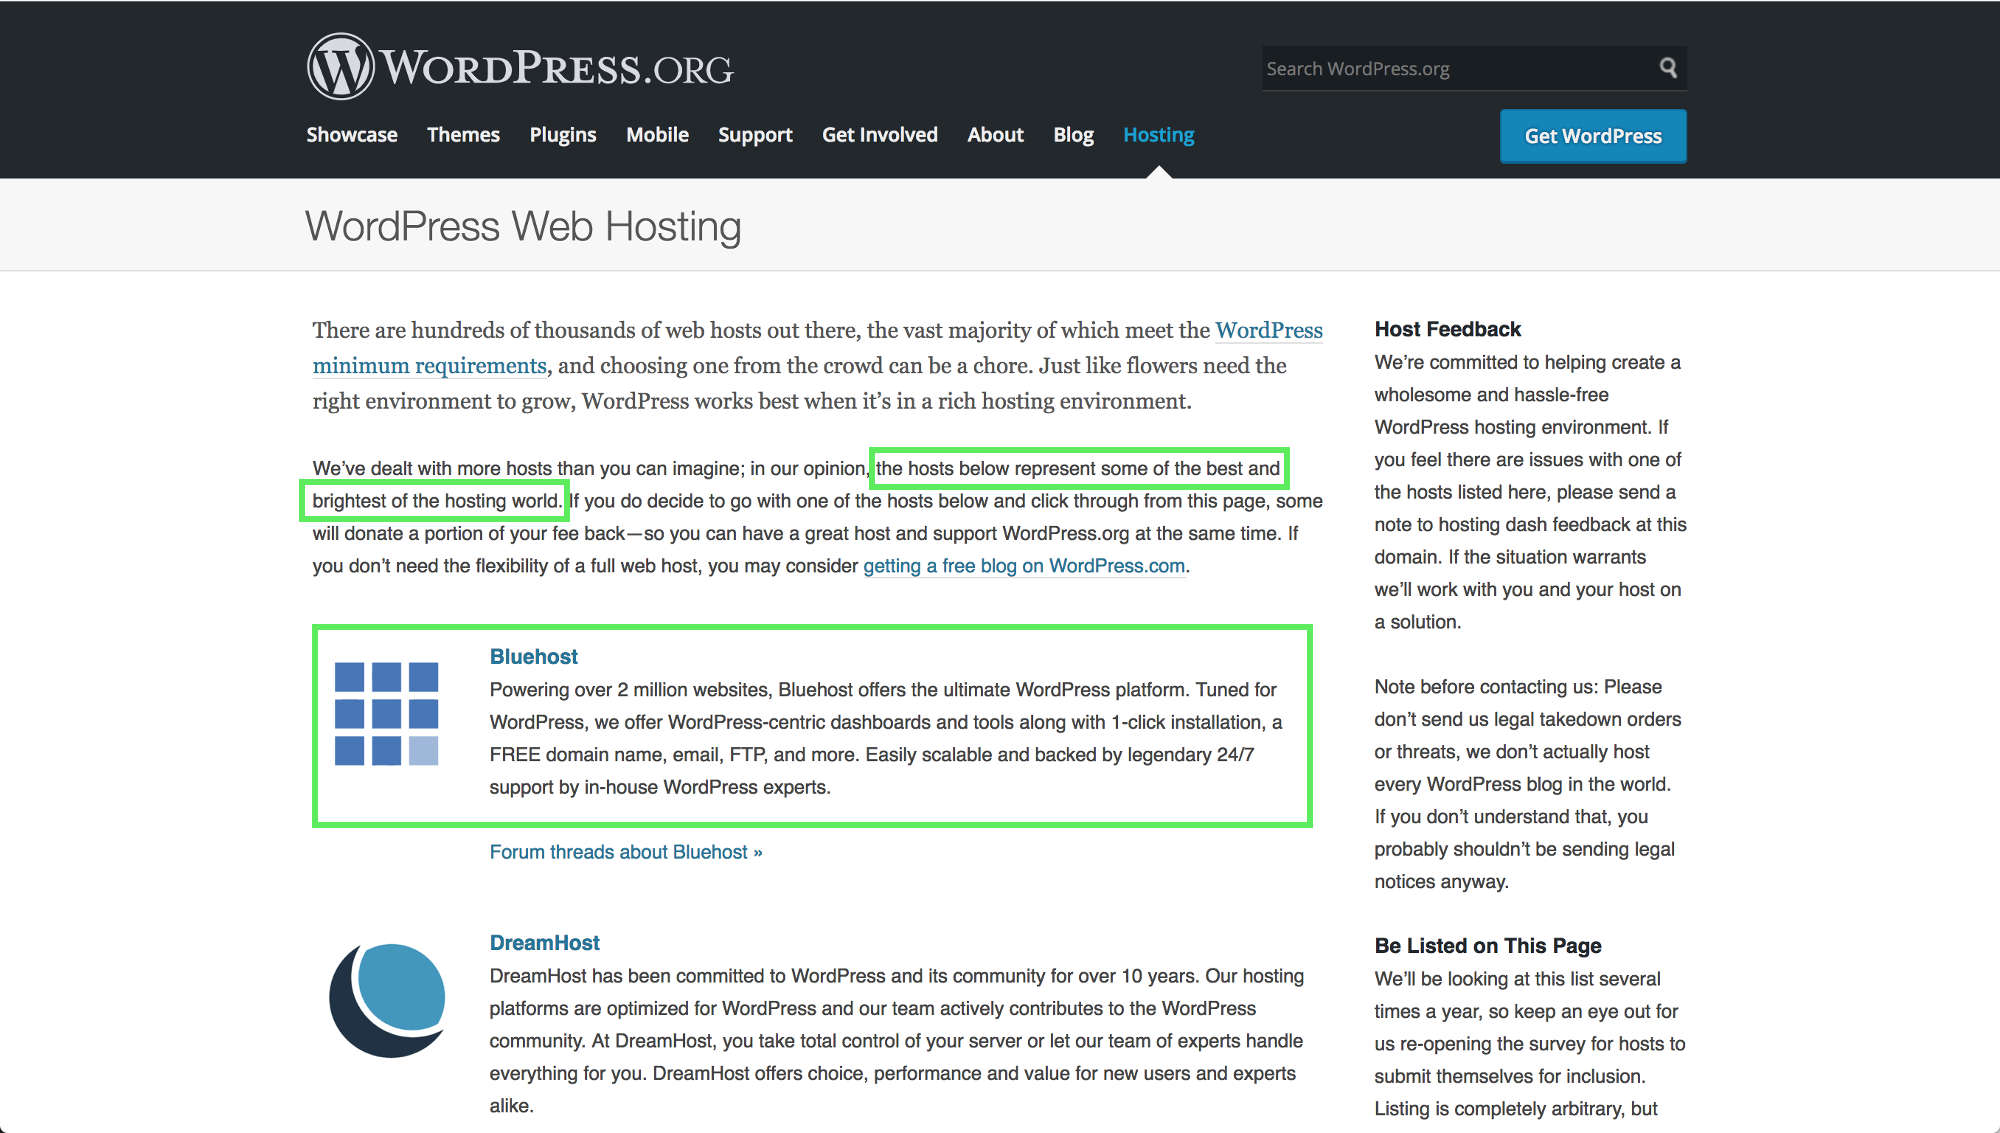 Bluehost ranks as WordPress.org's #1 recommended hosting solution for anyone looking to create a WordPress website as it is tuned perfectly for the platform.